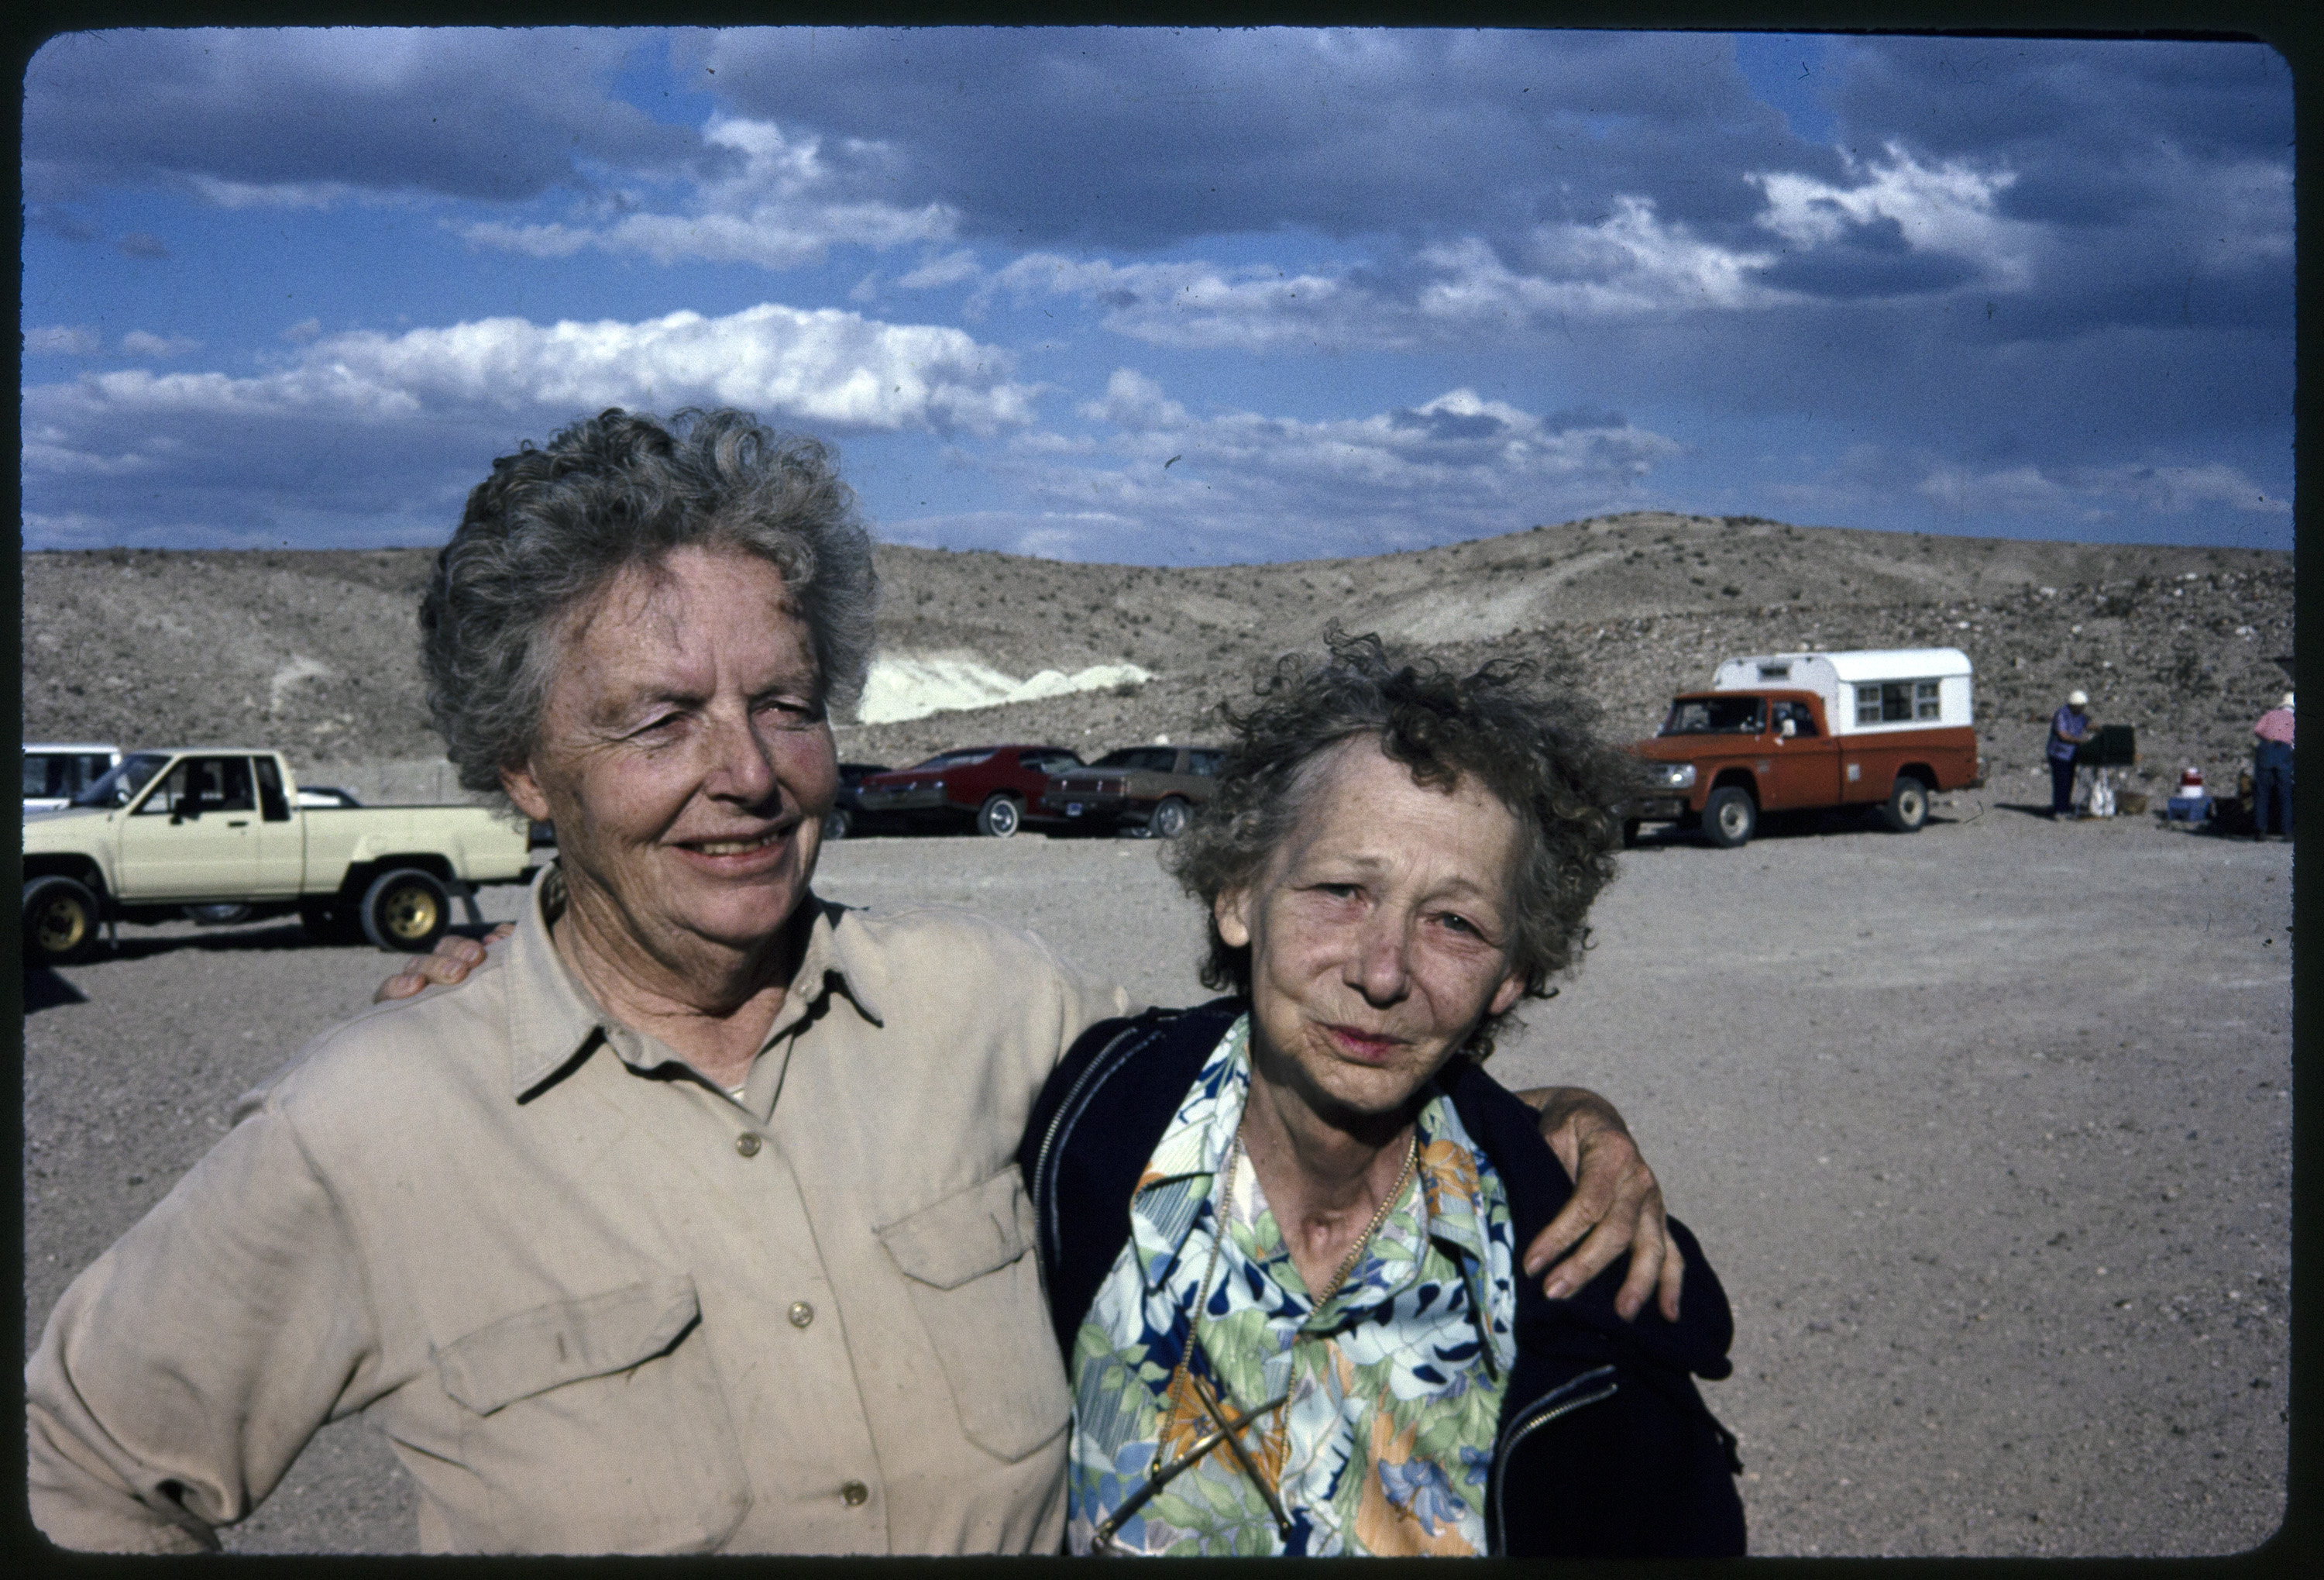 Archaeologist Ruth Simpson, an older woman with short gray hair wearing a khaki field shirt, poses with a friend--an older, unidentified woman with gray curly hair, wearing a floral shirt and blue jacket. Vehicles are parked in the background, and low desert hills of the Mojave are further back with a dark blue sky.